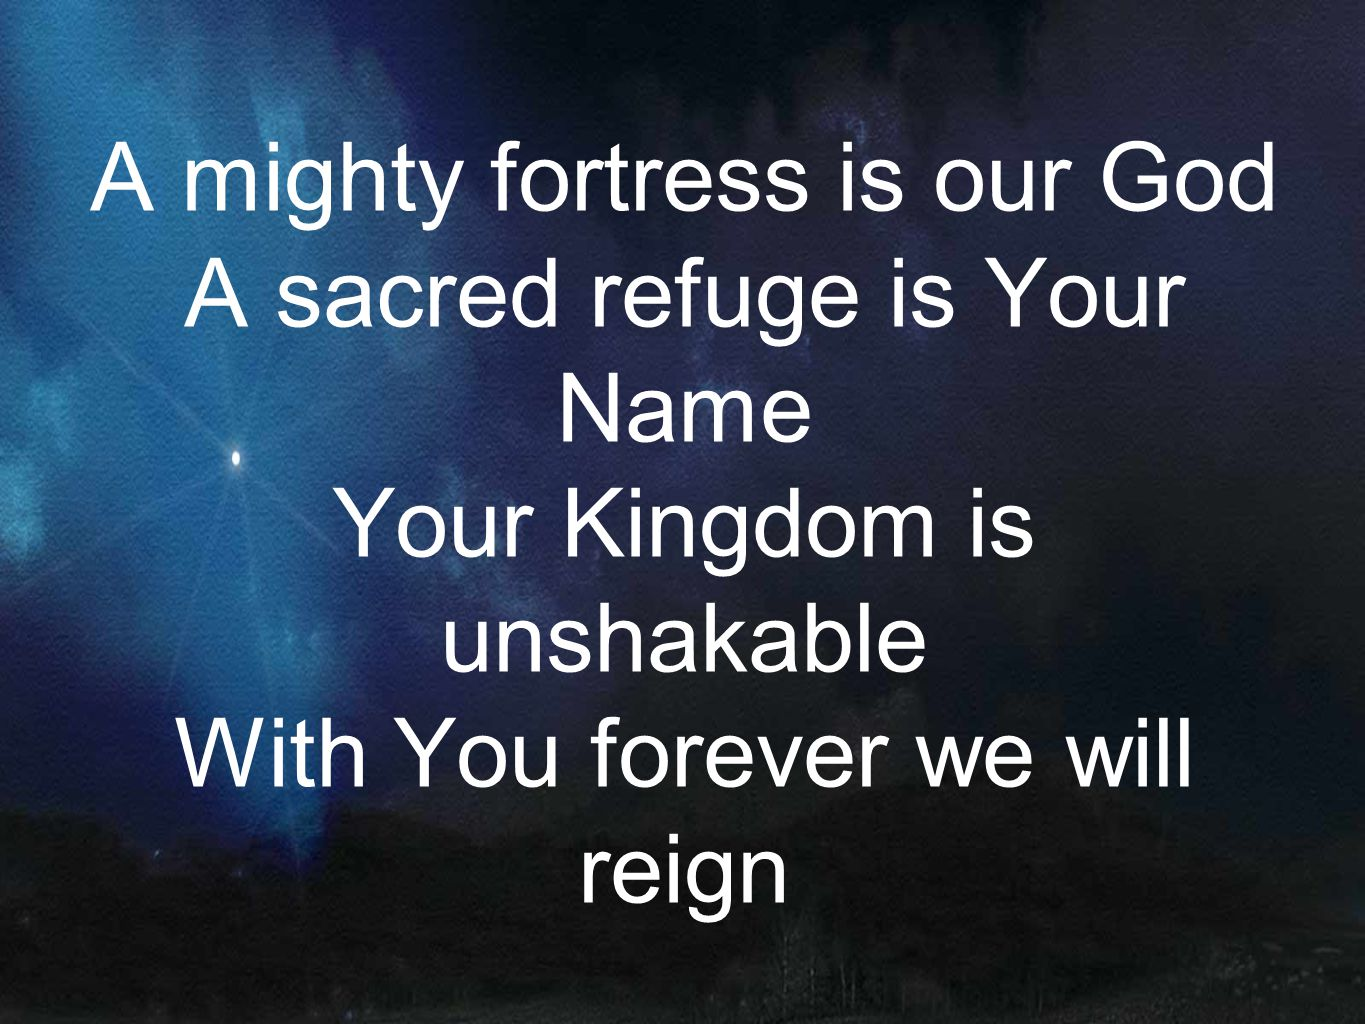 A mighty fortress is our God A sacred refuge is Your Name Your Kingdom is unshakable With You forever we will reign